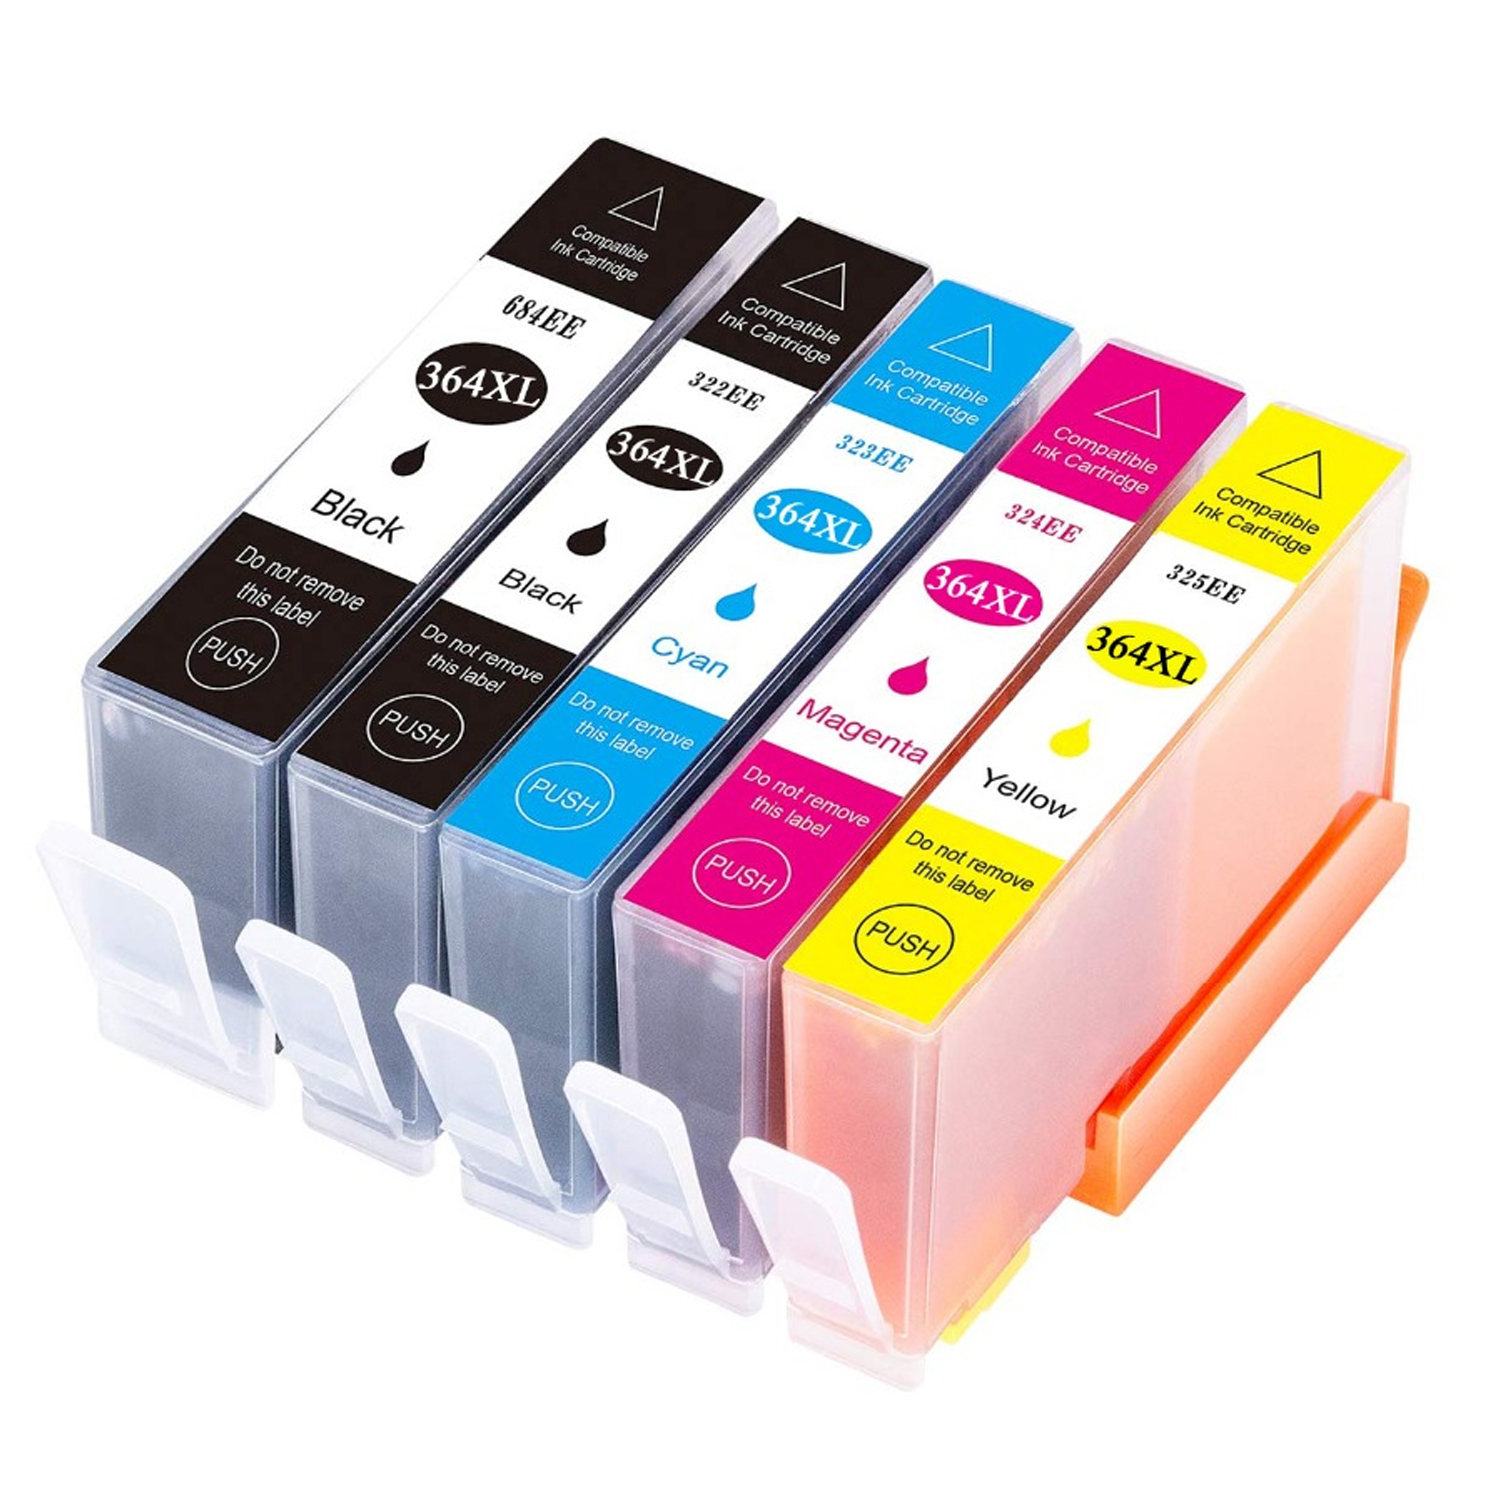 <font><b>364XL</b></font> <font><b>Ink</b></font> Cartridge Replacement for HP 364 XL for hp364 for deskjet 3070A 3520 photosmart 5510 5520 6510 6520 7510 7520 image